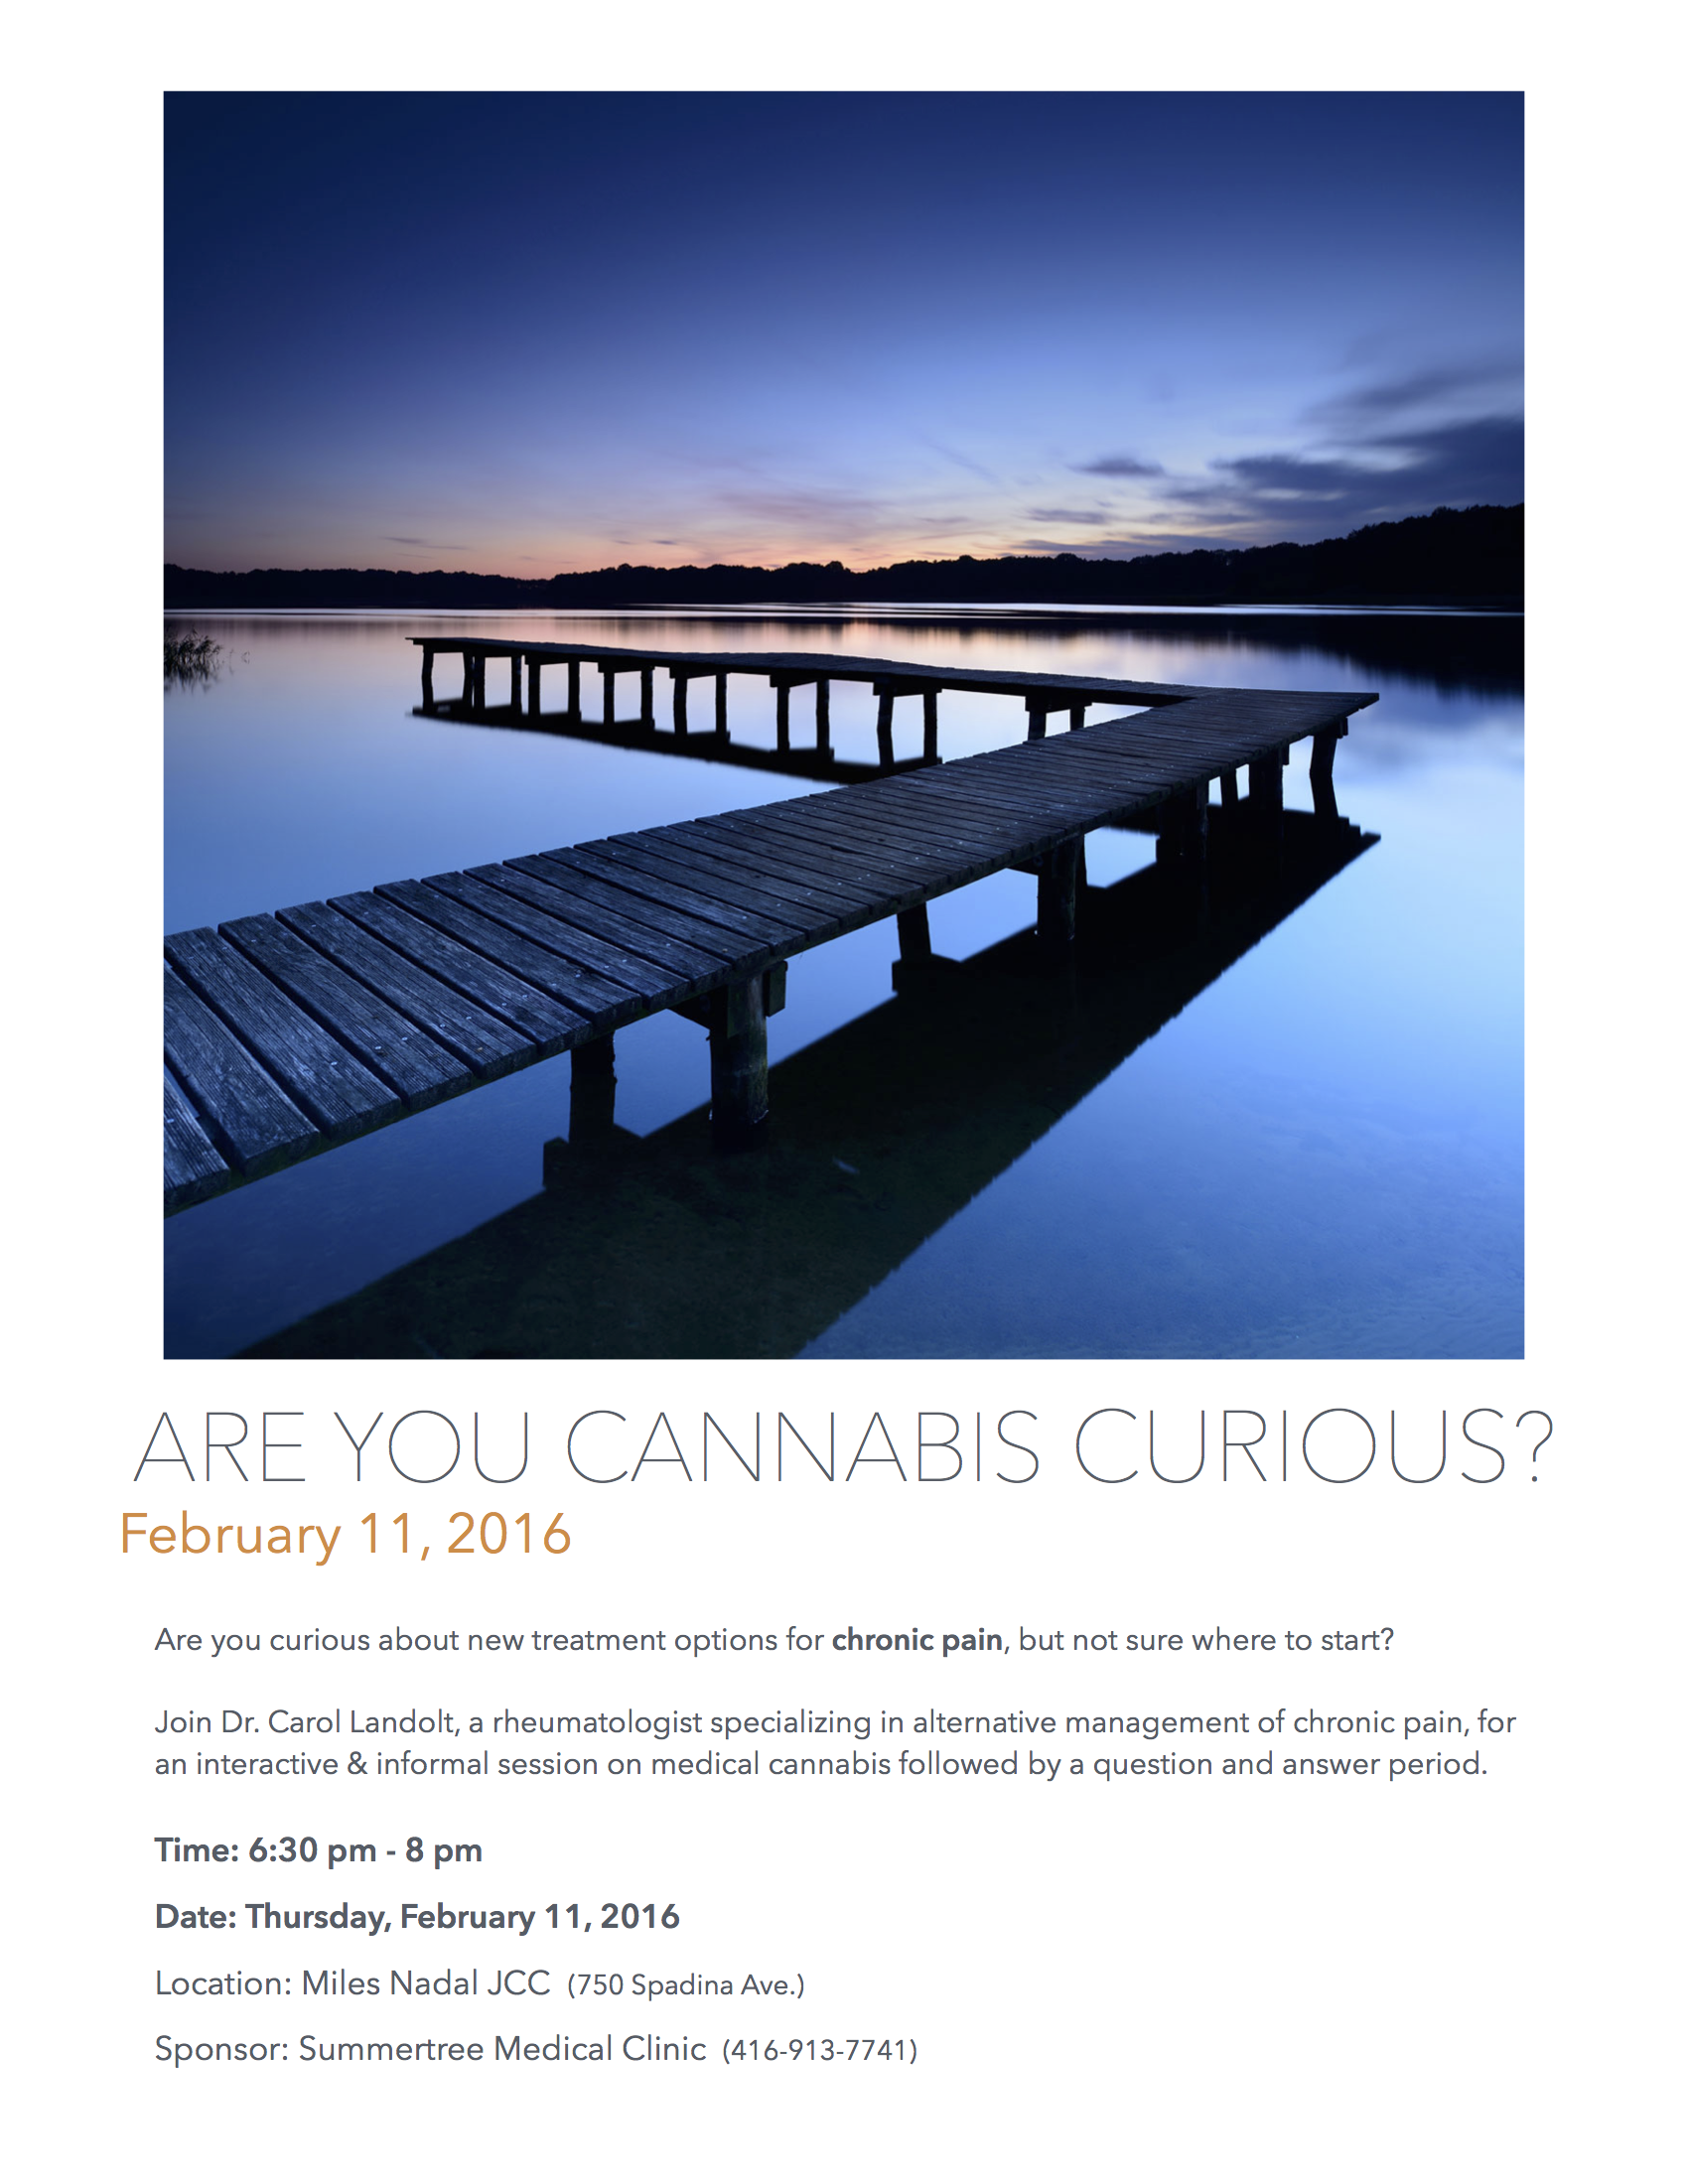 Cannabis Curious Info Session Poster